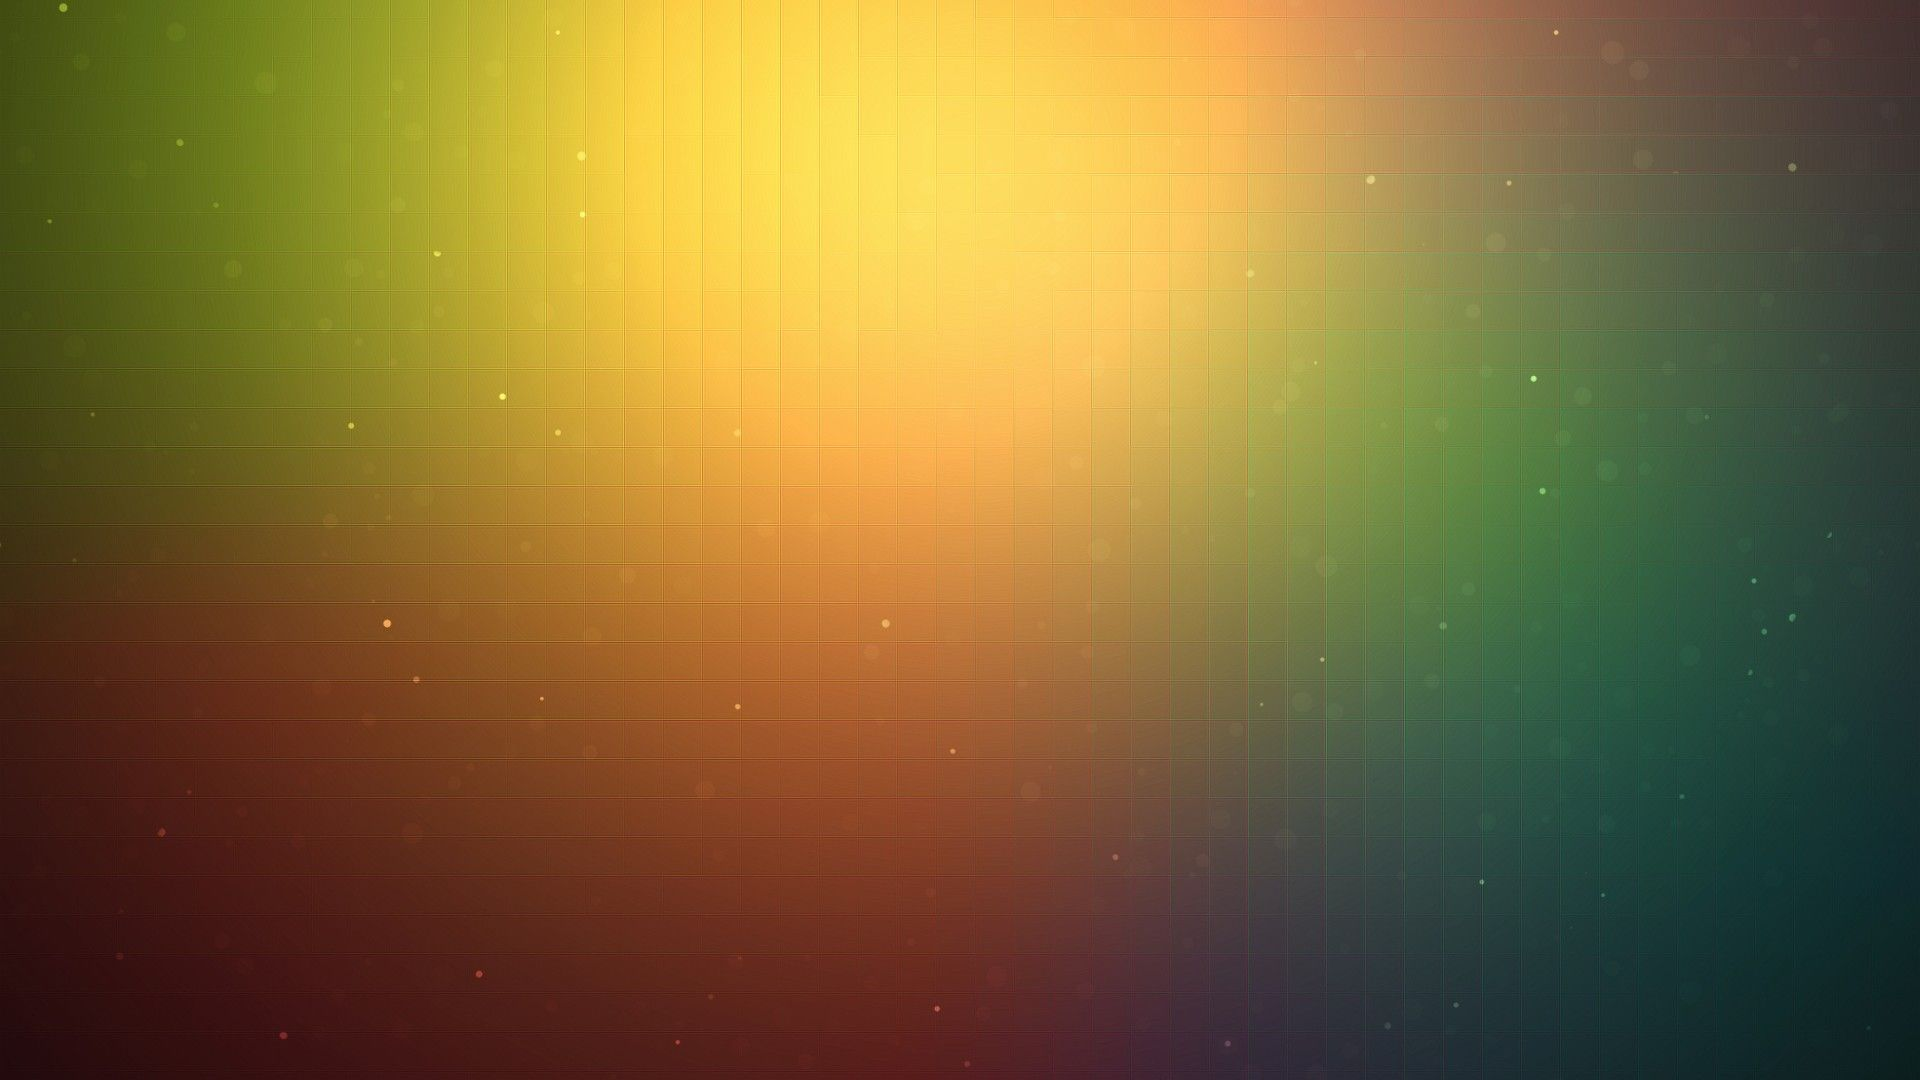 Download Multicolor Gaussian Blur Simple Background Plain 88267 15 Hd Desktop Wallpapers Wallpapers Plain Wallpaper Digital Wallpaper Black Wallpaper Iphone